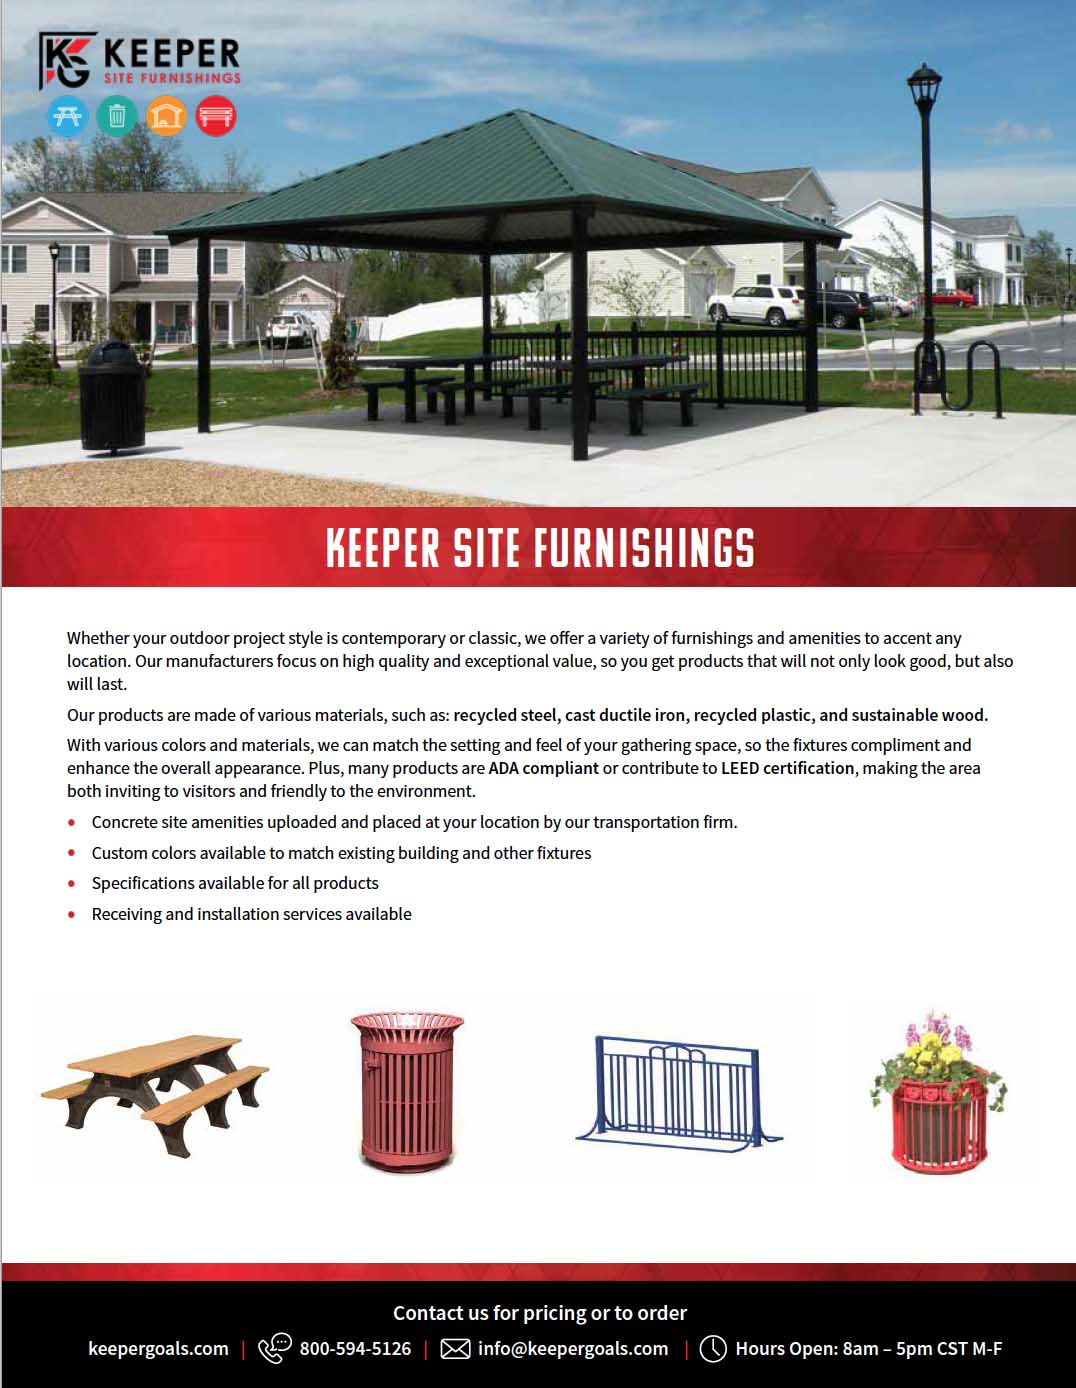 Keeper Site Furnishing Product Overview Flyer